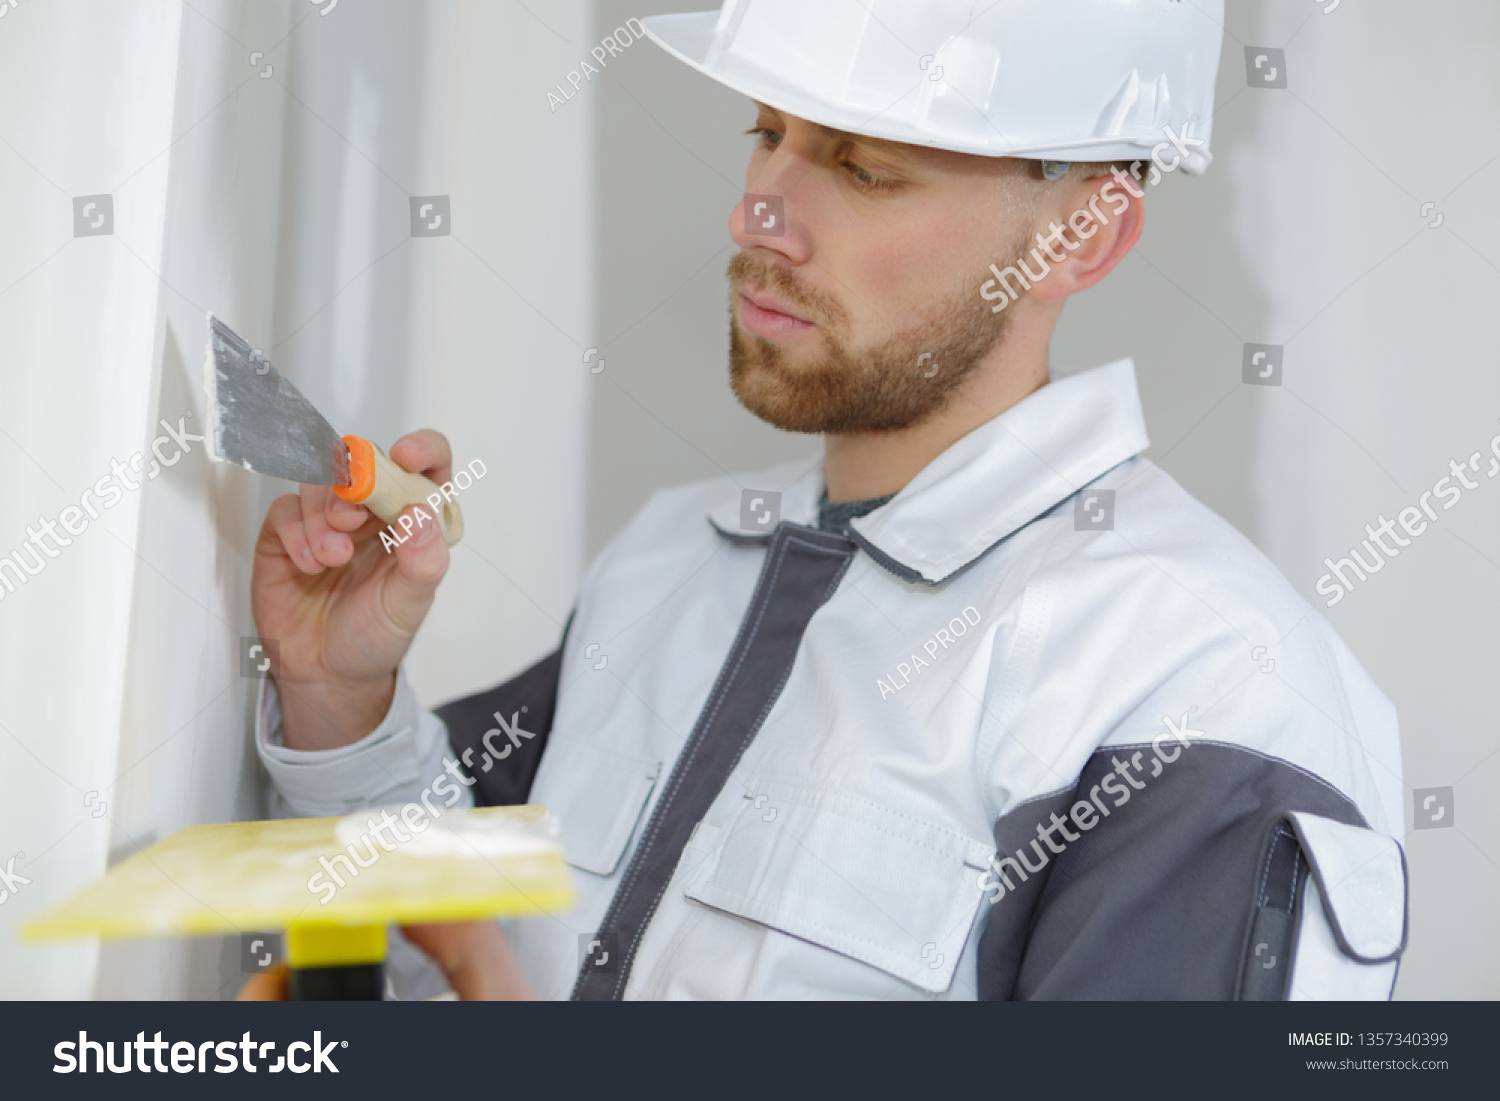 construction worker plasterer with trowel plastering a wall #1357340399